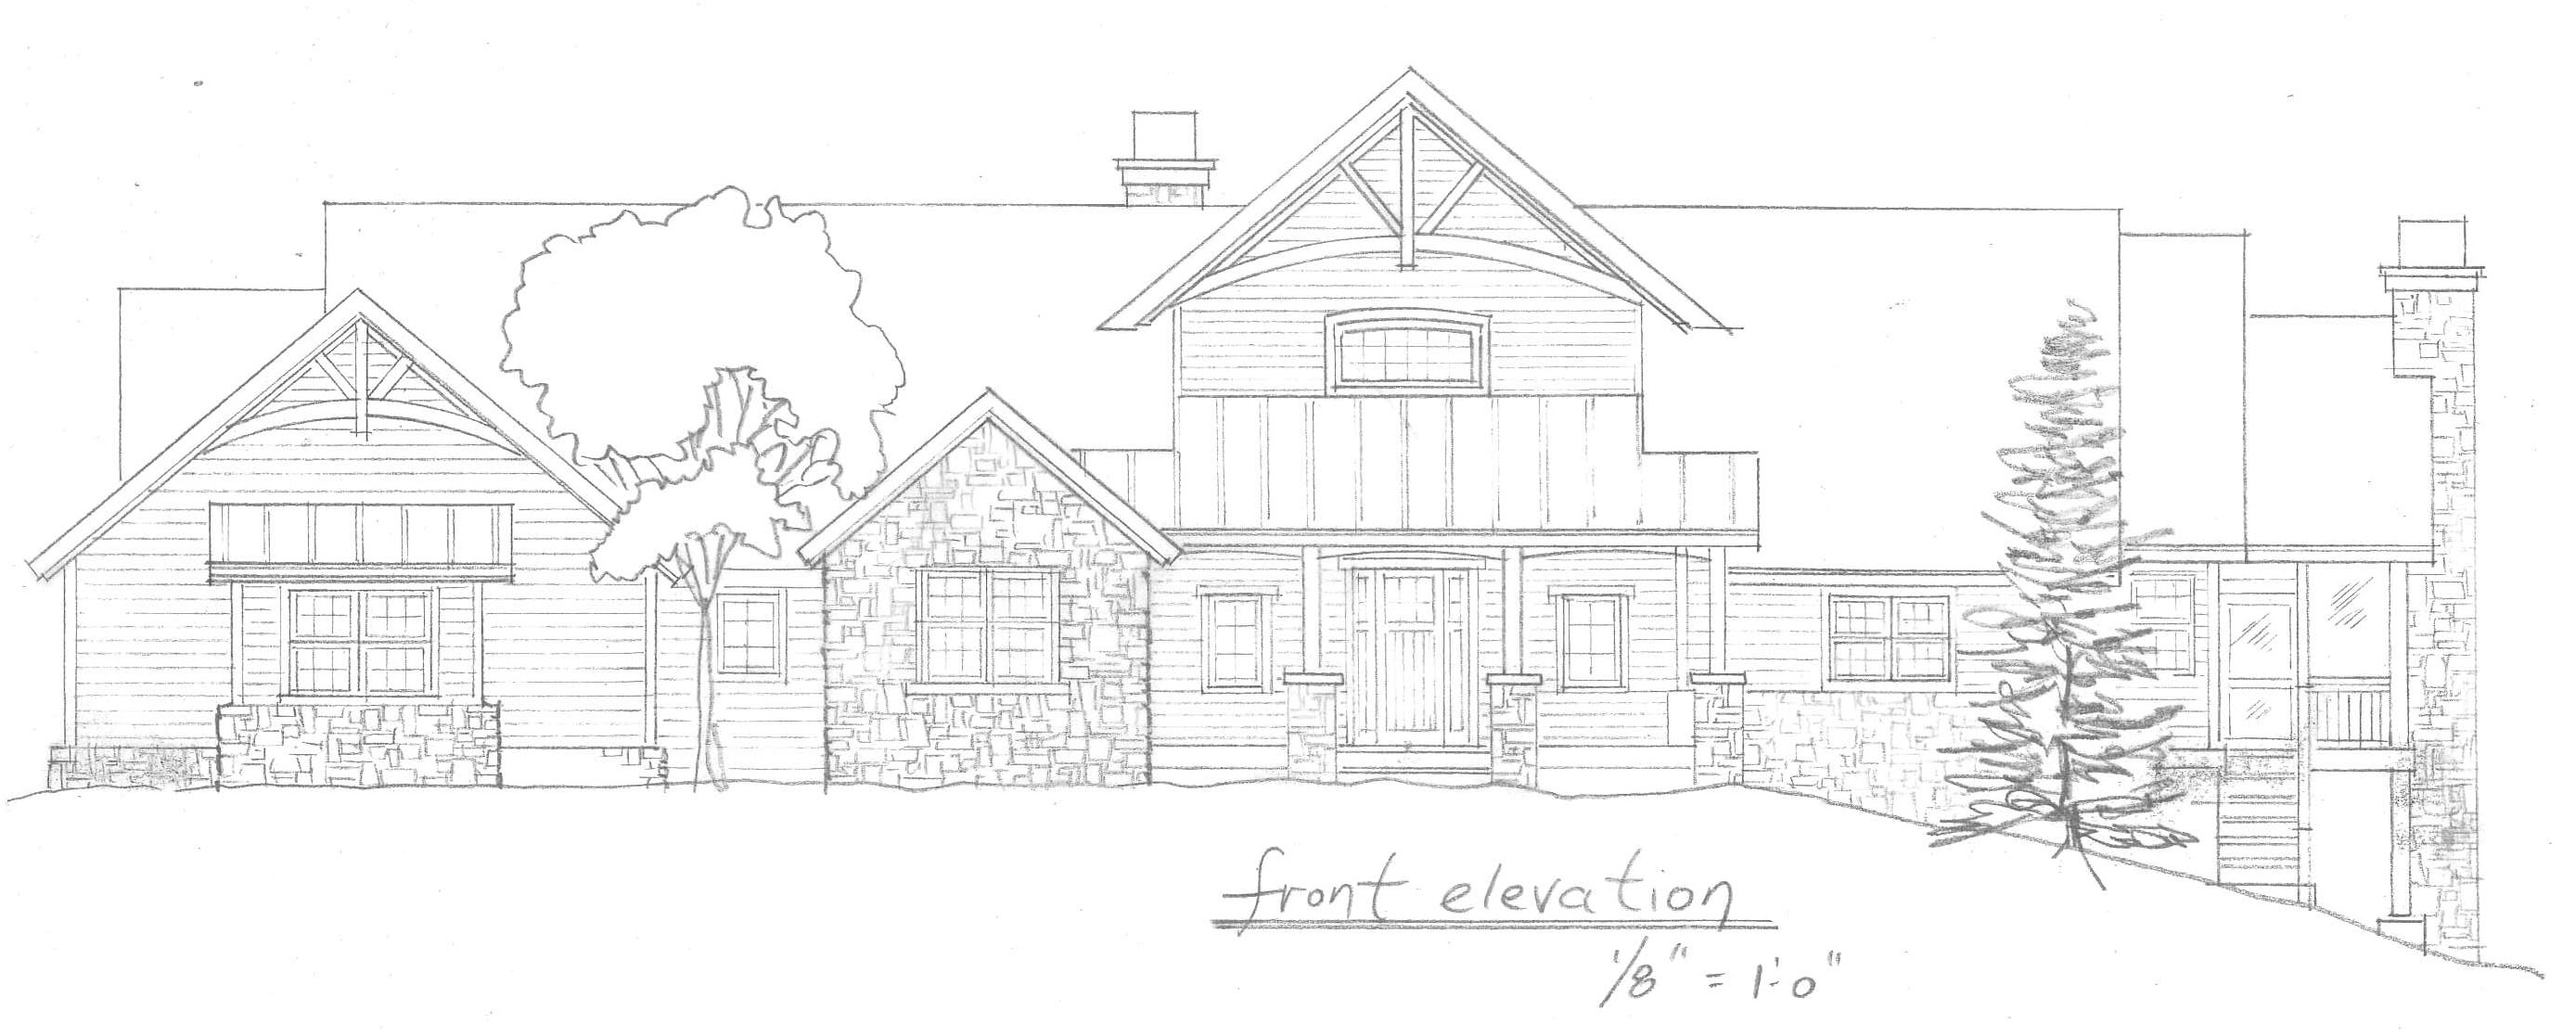 Sylvan Habitat House Early Sketch For This Home View Image Please Add Picture